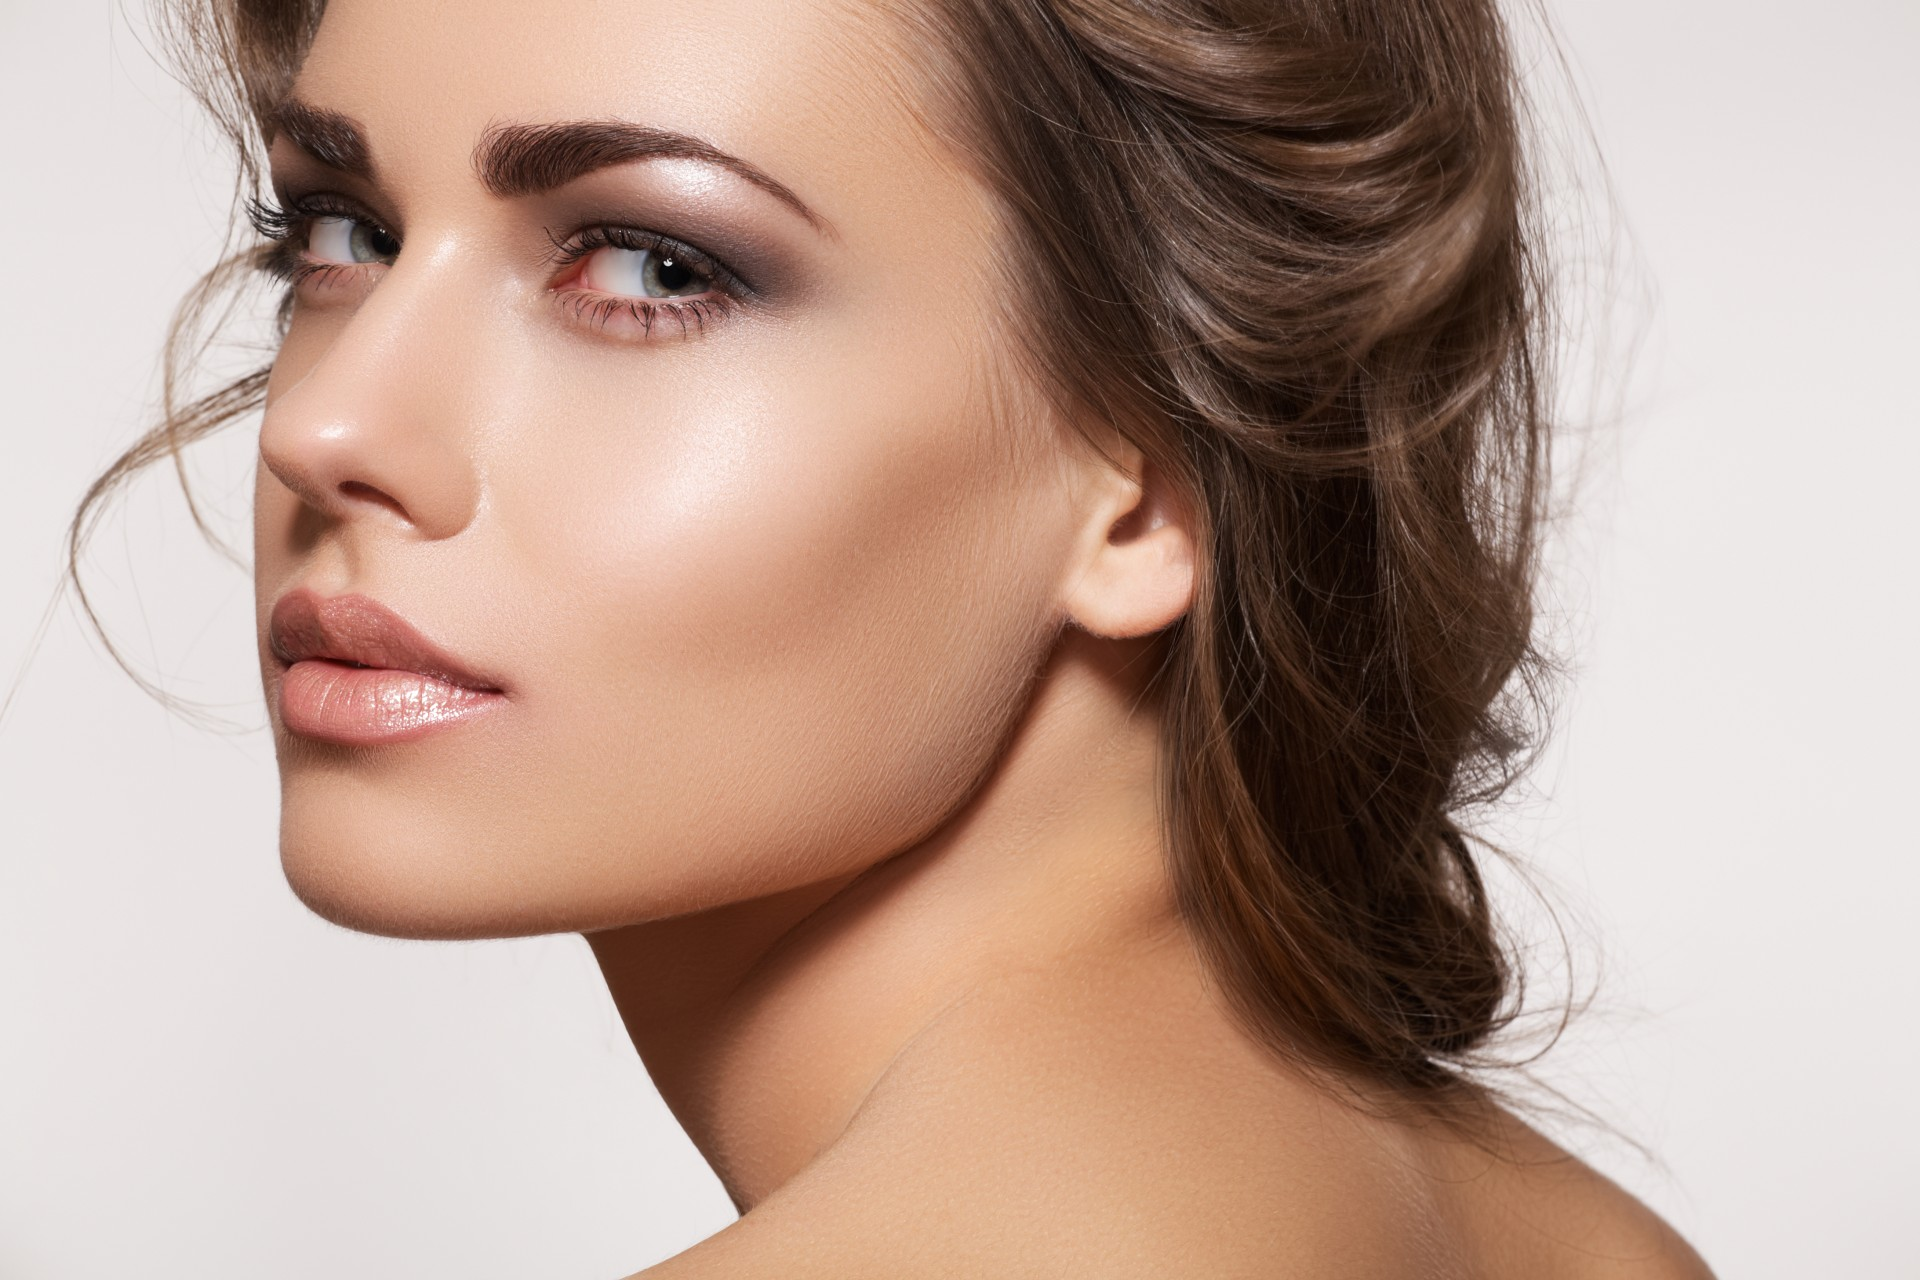 Gorgeous glowing skin, tick. Sculpted brows, tick.